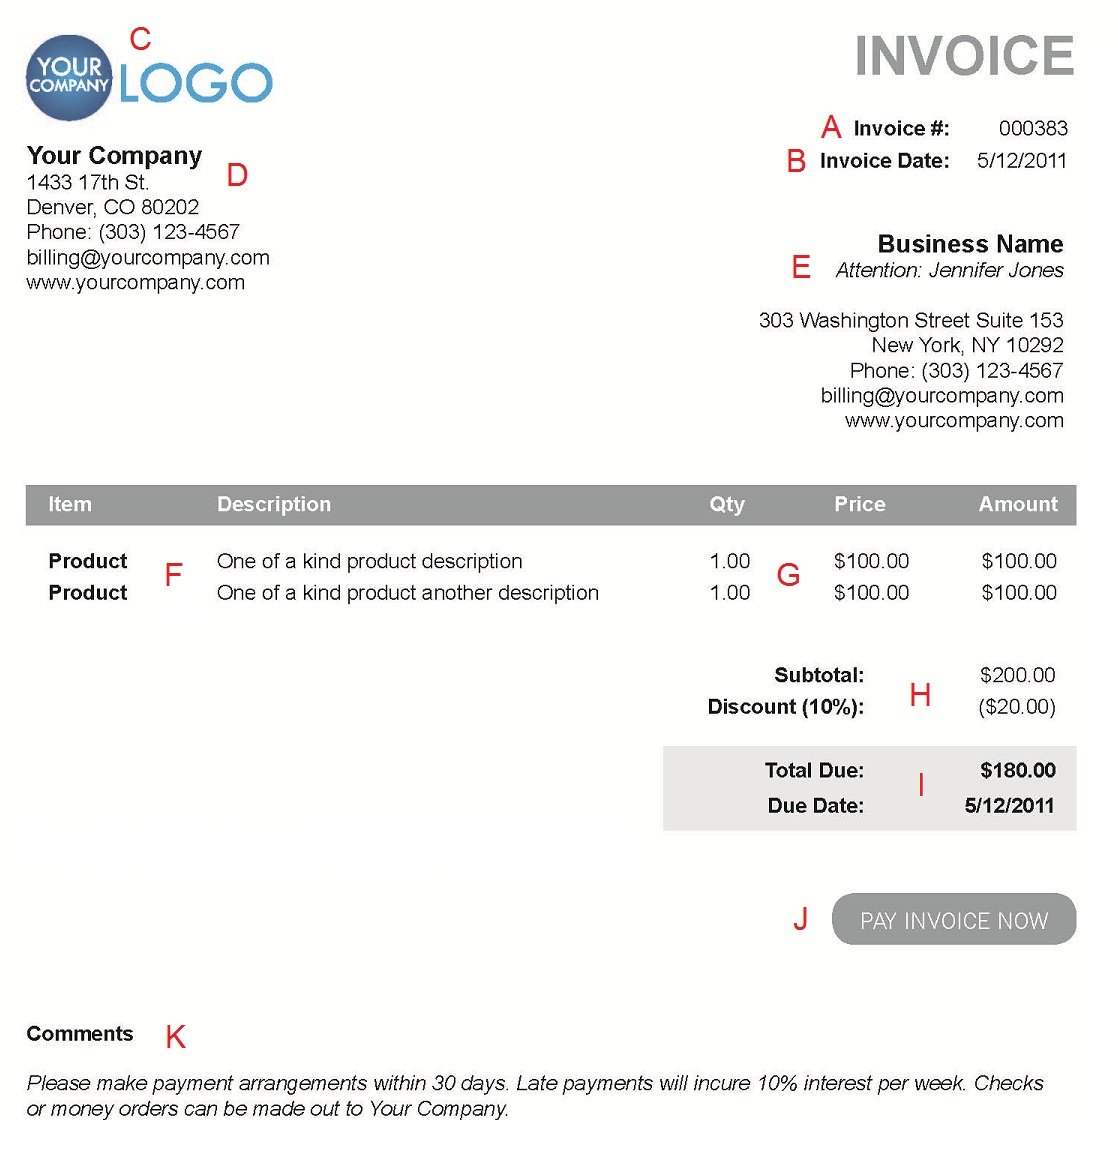 Sandiegolocksmithsus  Gorgeous The  Different Sections Of An Electronic Payment Invoice With Exquisite A  With Amazing Auto Repair Shop Invoice Software Also Bmw Invoice Pricing In Addition Make An Invoice In Word And What Is Invoice Price On A Car As Well As Invoice For Freelance Work Additionally Xero Invoice Templates From Paysimplecom With Sandiegolocksmithsus  Exquisite The  Different Sections Of An Electronic Payment Invoice With Amazing A  And Gorgeous Auto Repair Shop Invoice Software Also Bmw Invoice Pricing In Addition Make An Invoice In Word From Paysimplecom